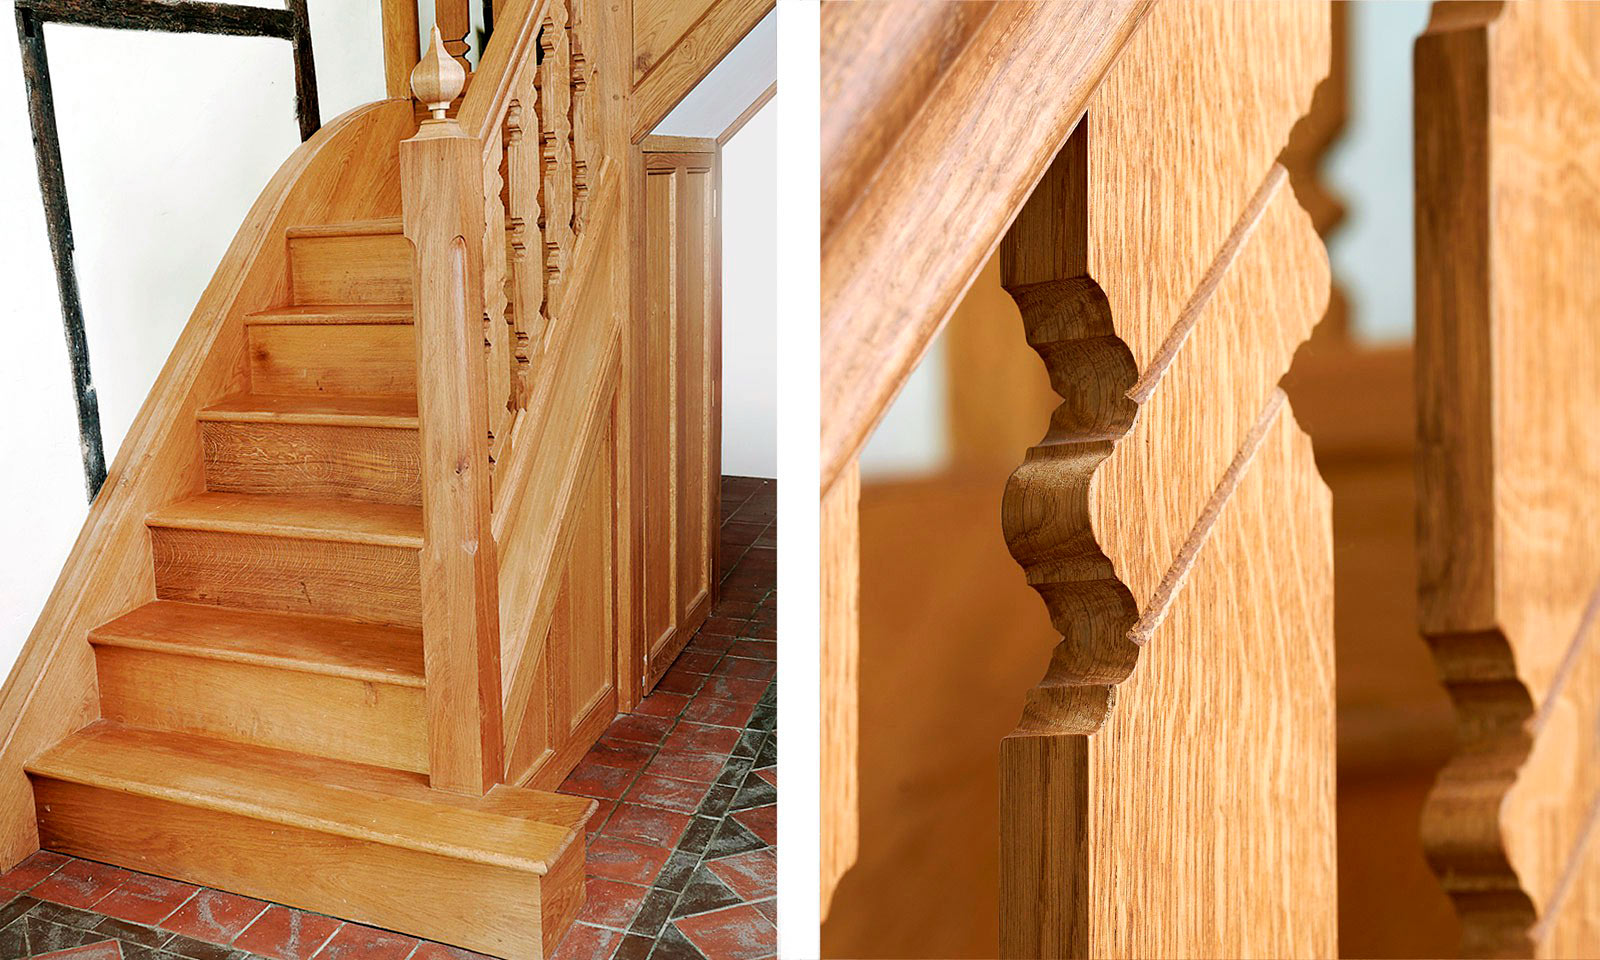 Gothic Staircase. Bespoke, custom made, hand-crafted, stairs, made using traditional wood-working techniques and manufactured out of solid European oak. Bespoke custom made joinery from Mounts Hill.